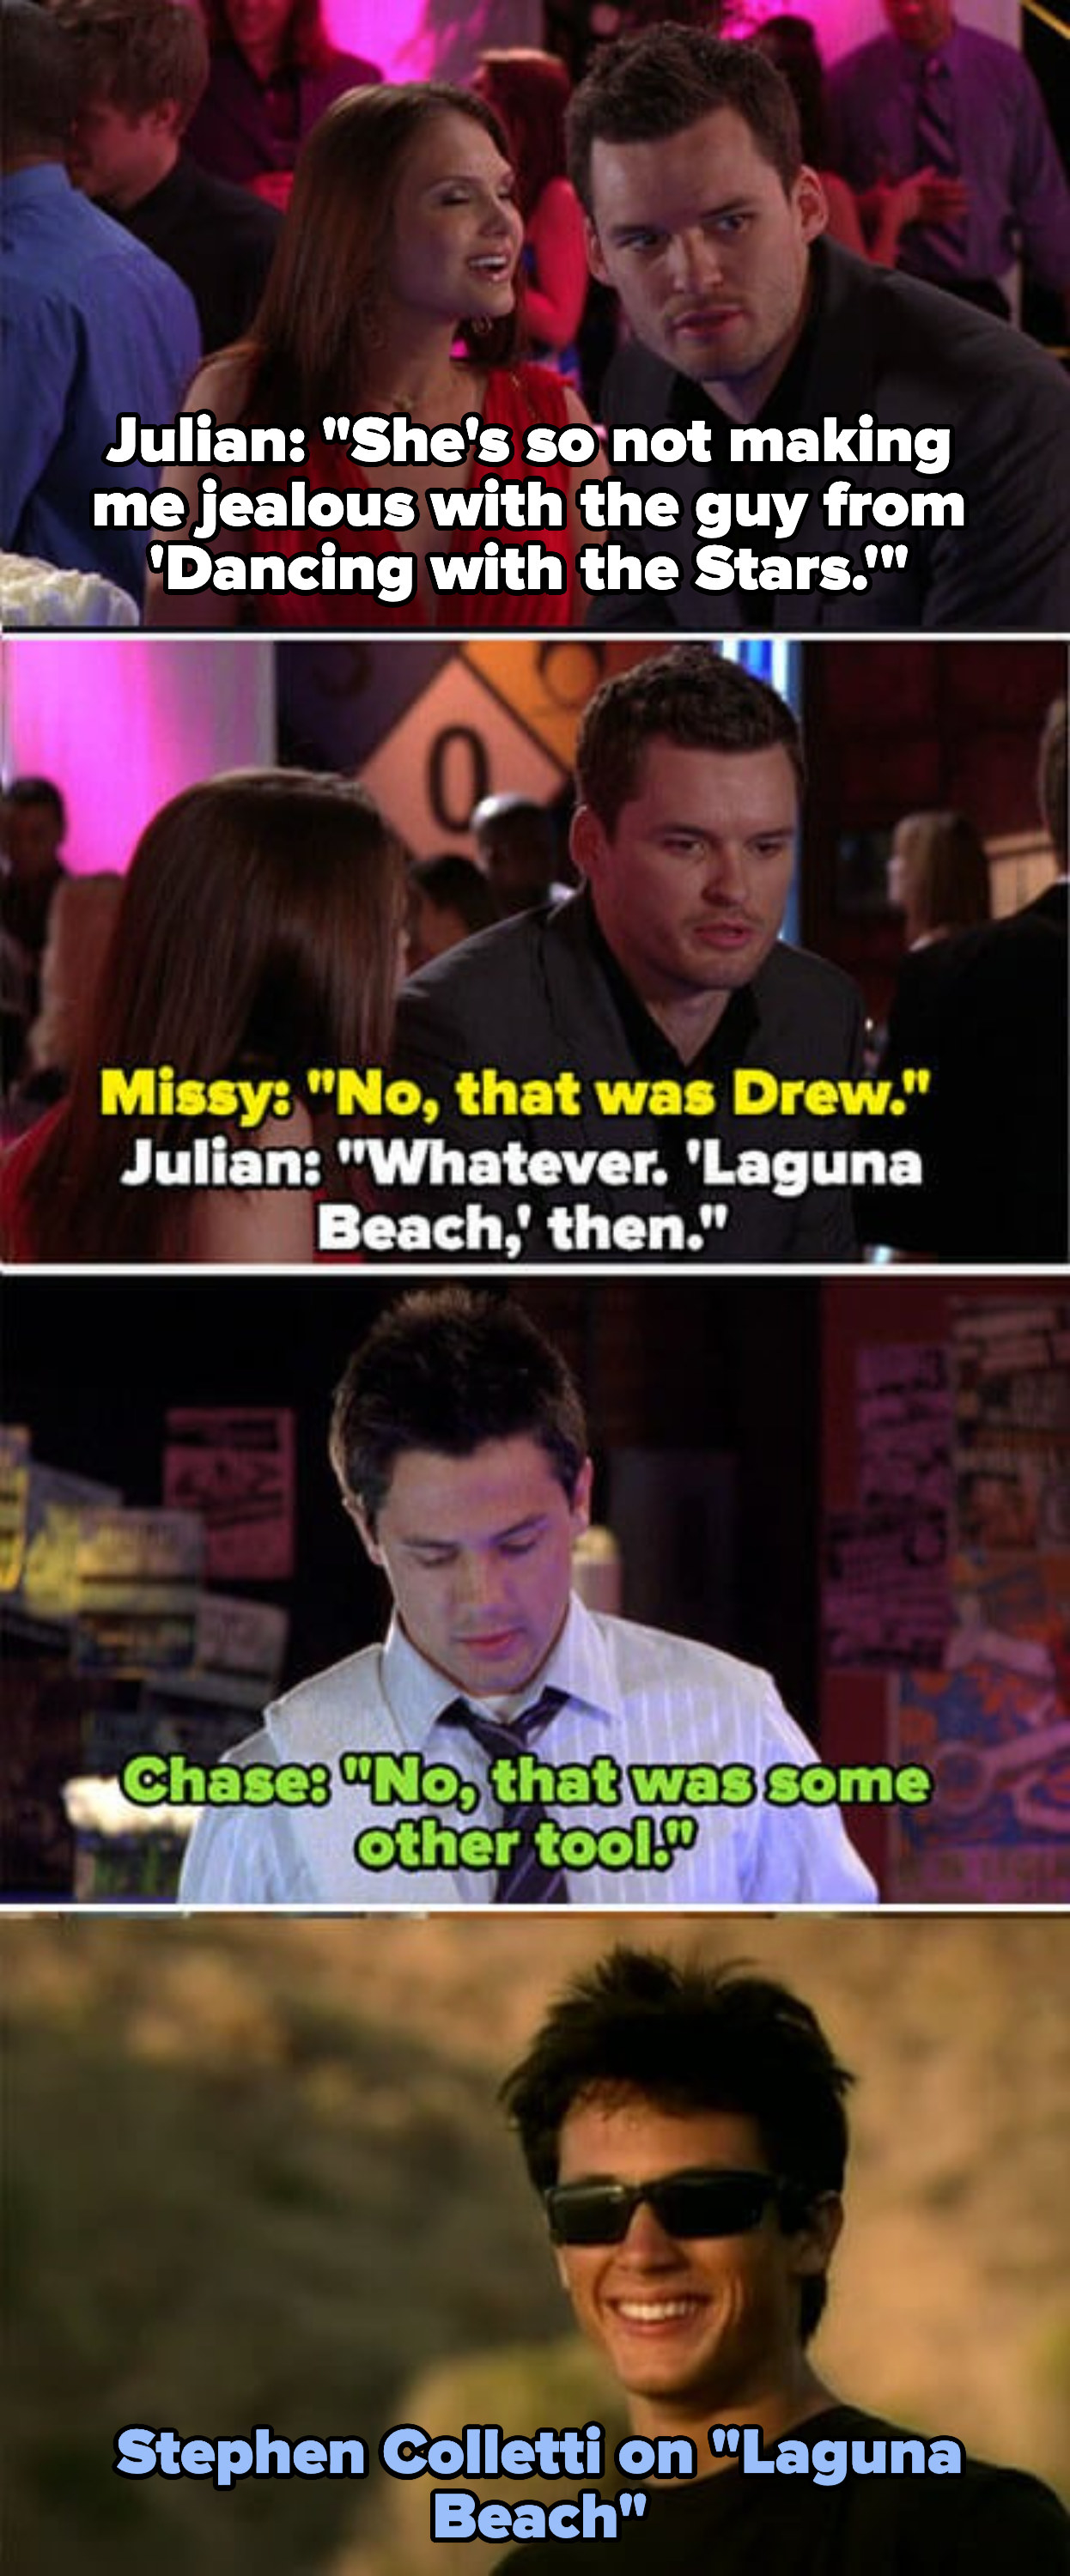 "Julian thinks Nick Lachey was on Dancing with the Stars, then Laguna Beach, and Chase (played by Stephen Colletti) walks by and says ""No, that was some other tool"" and then there's a photo of him on Laguna Beach"